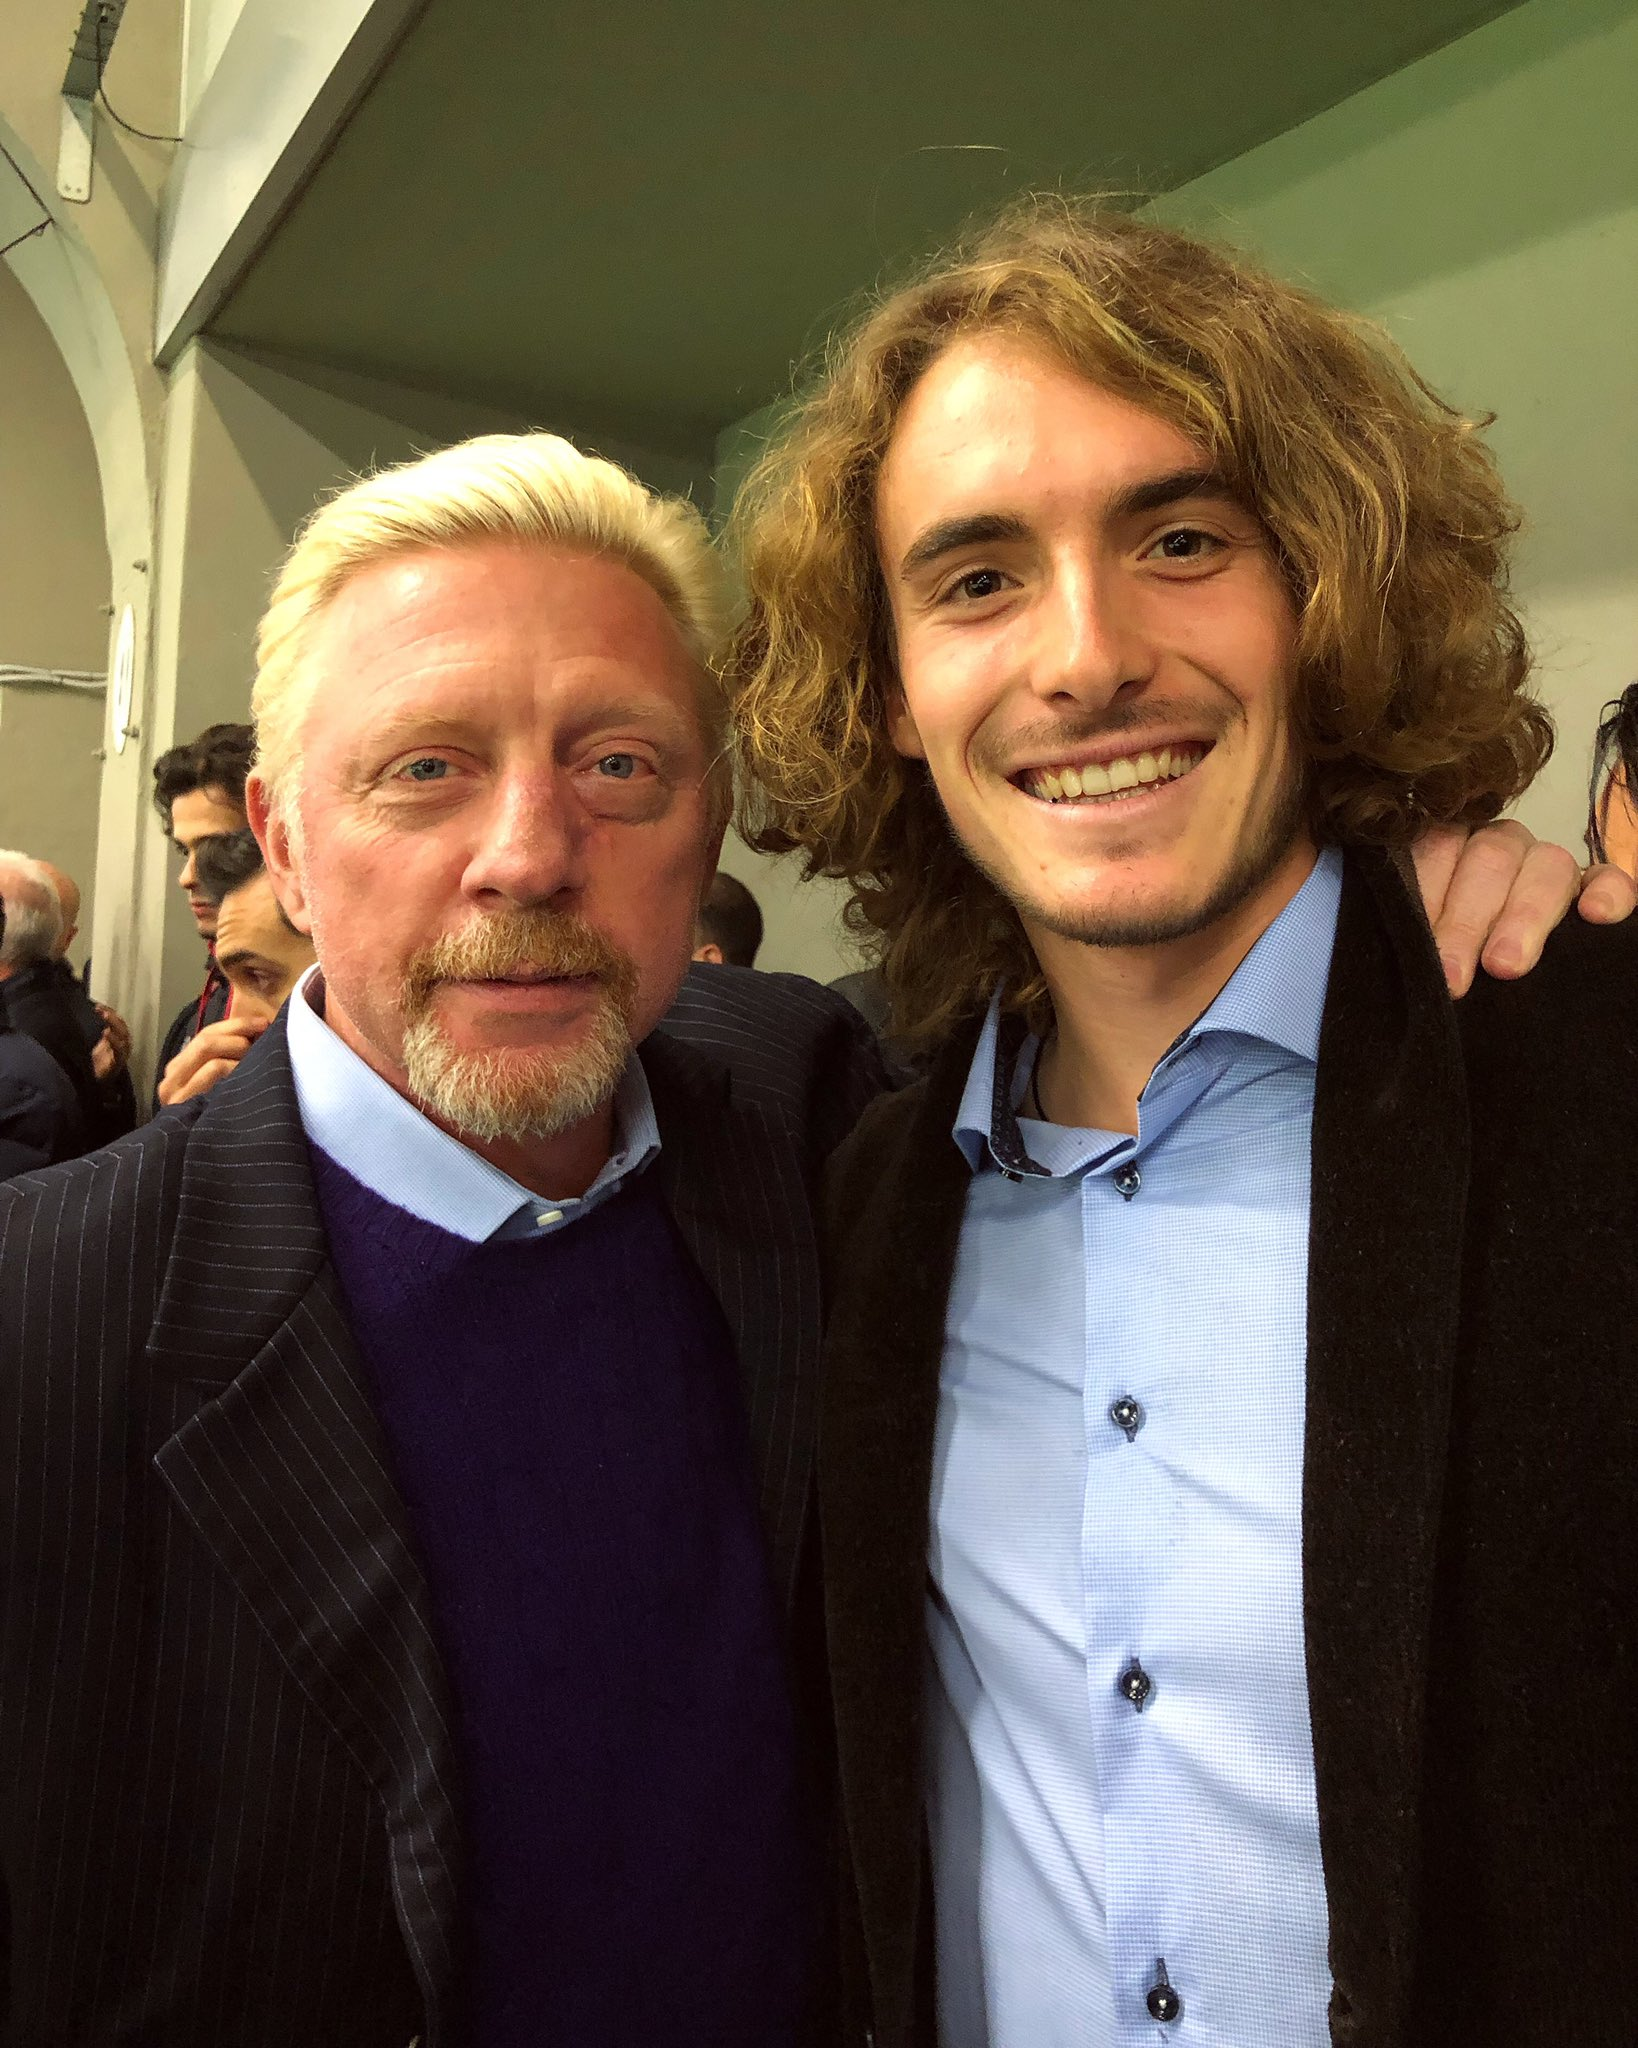 Stefanos Tsitsipas On Twitter Look Who I Bumped Into At The Juventusfc Vs Acmilan Seriea Match